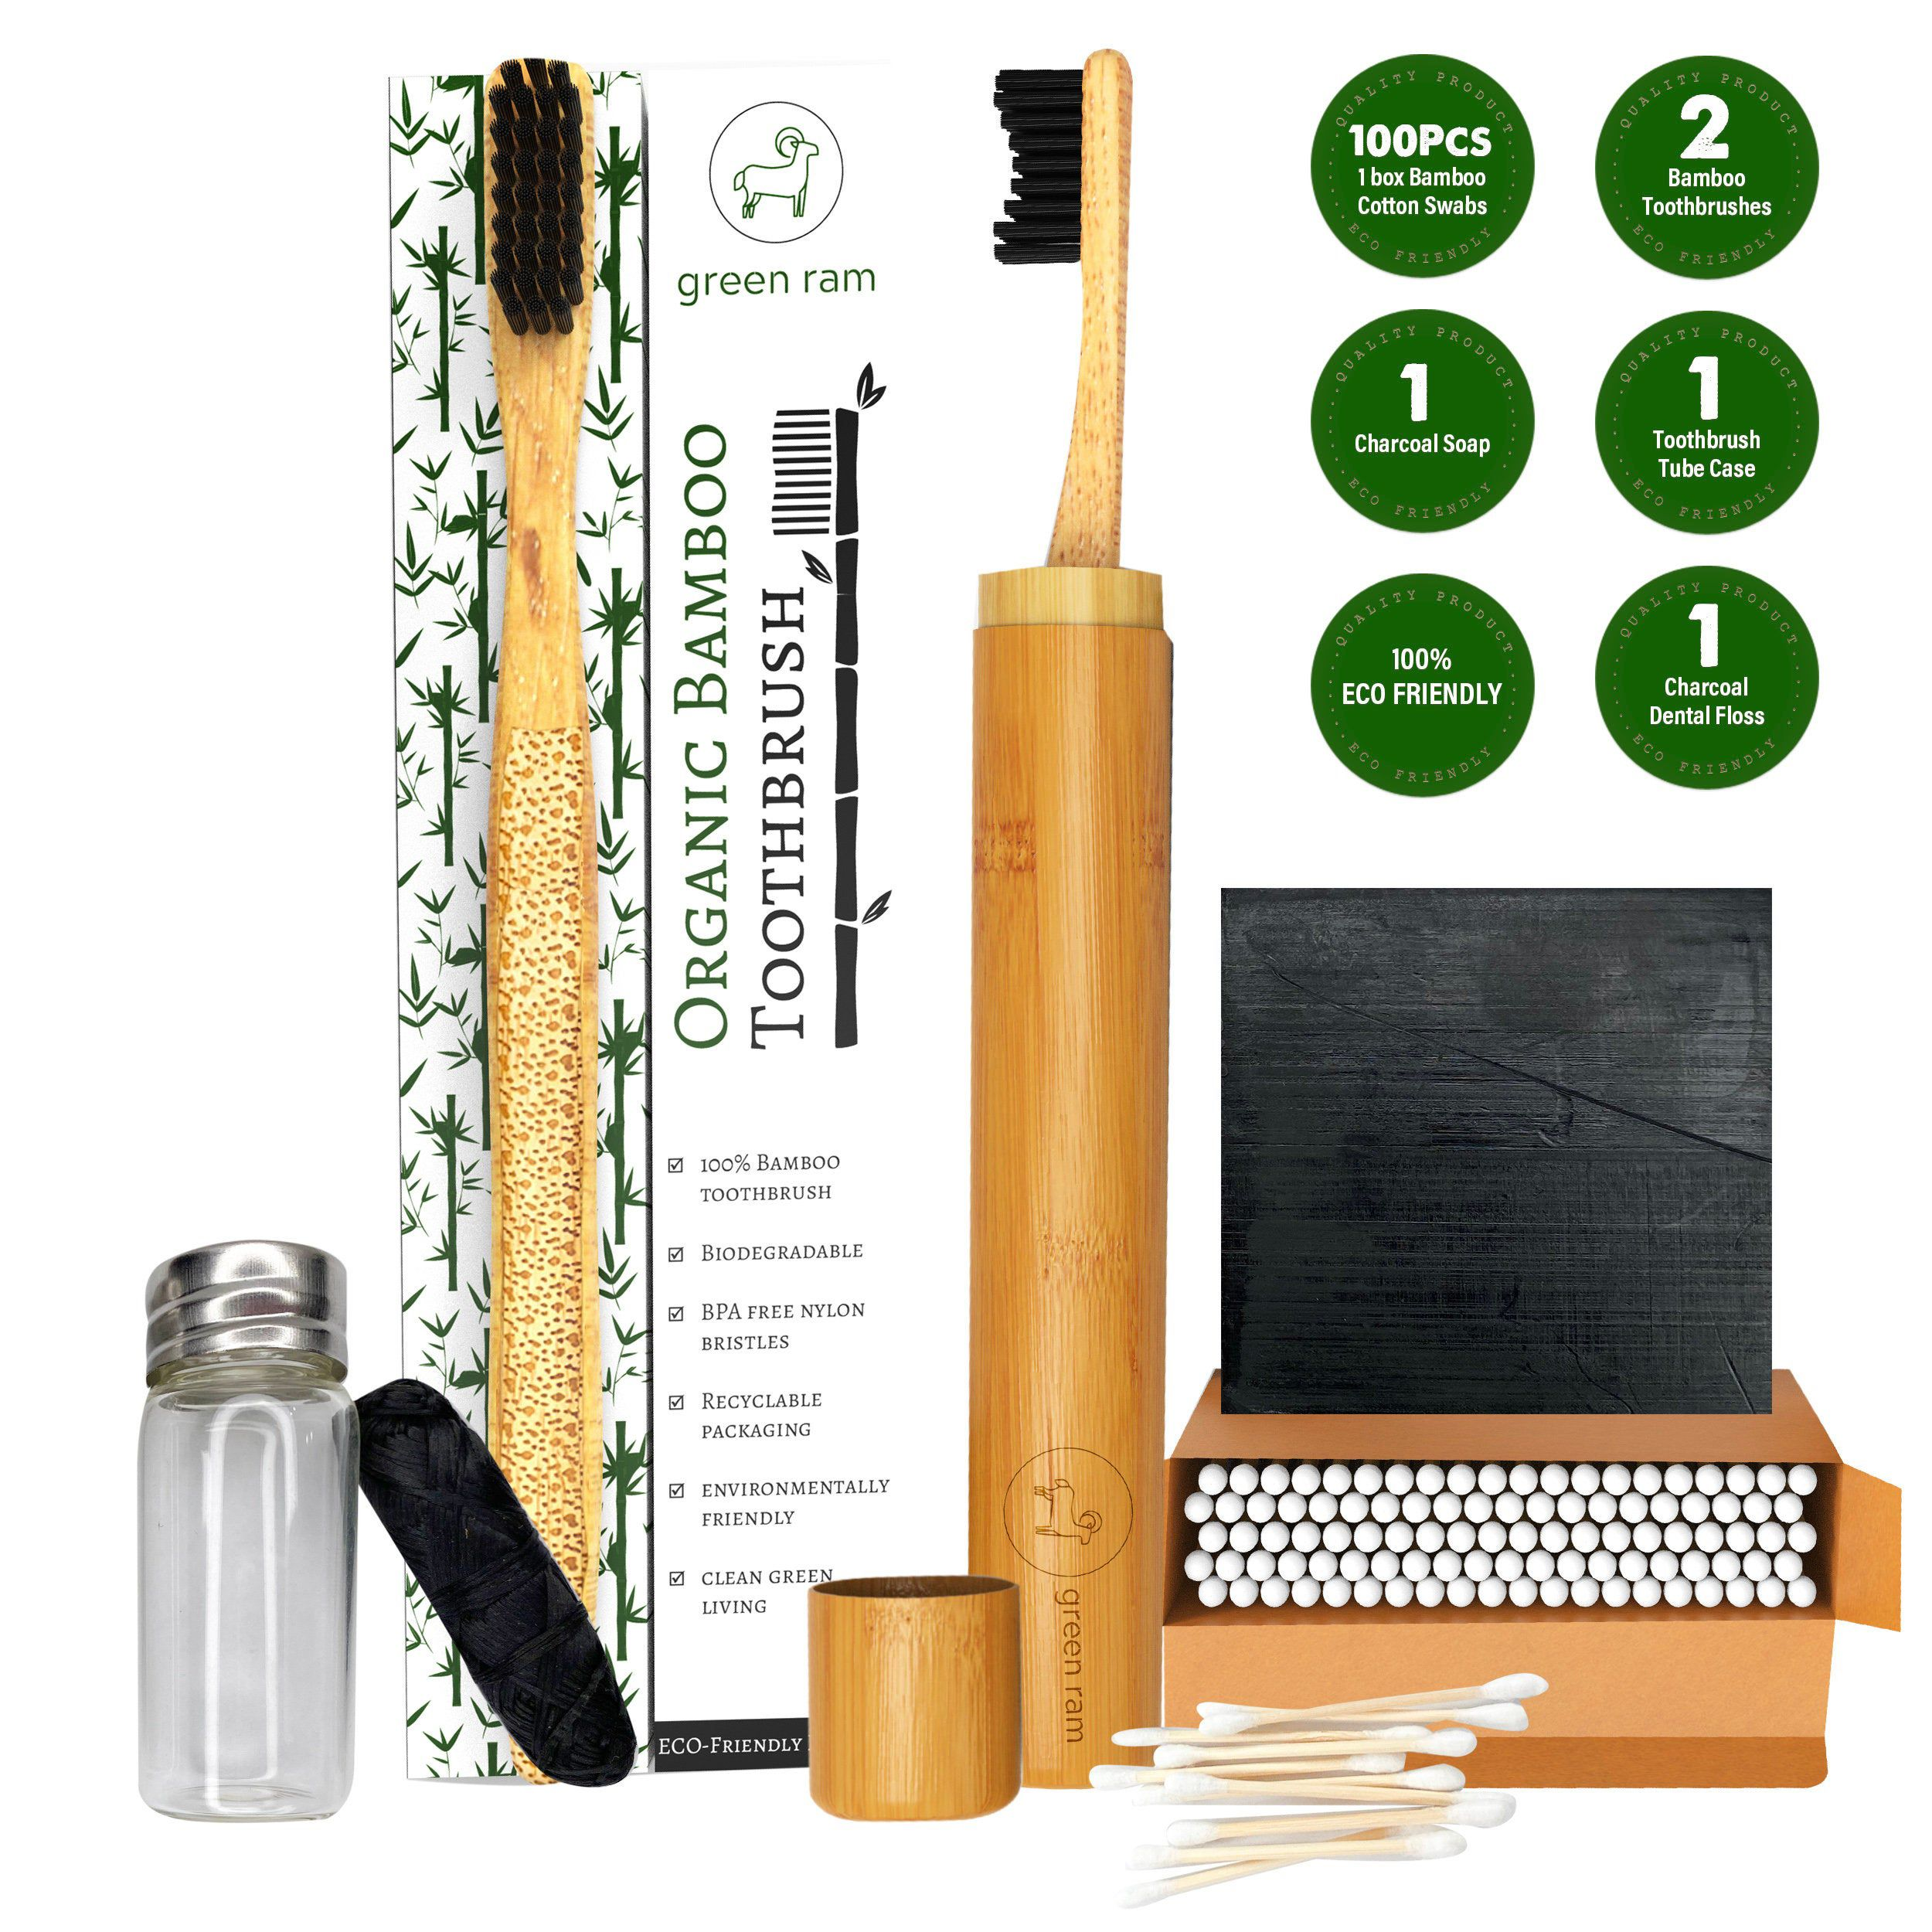 Bamboo toothbrush set engraved toothbrushes with travel